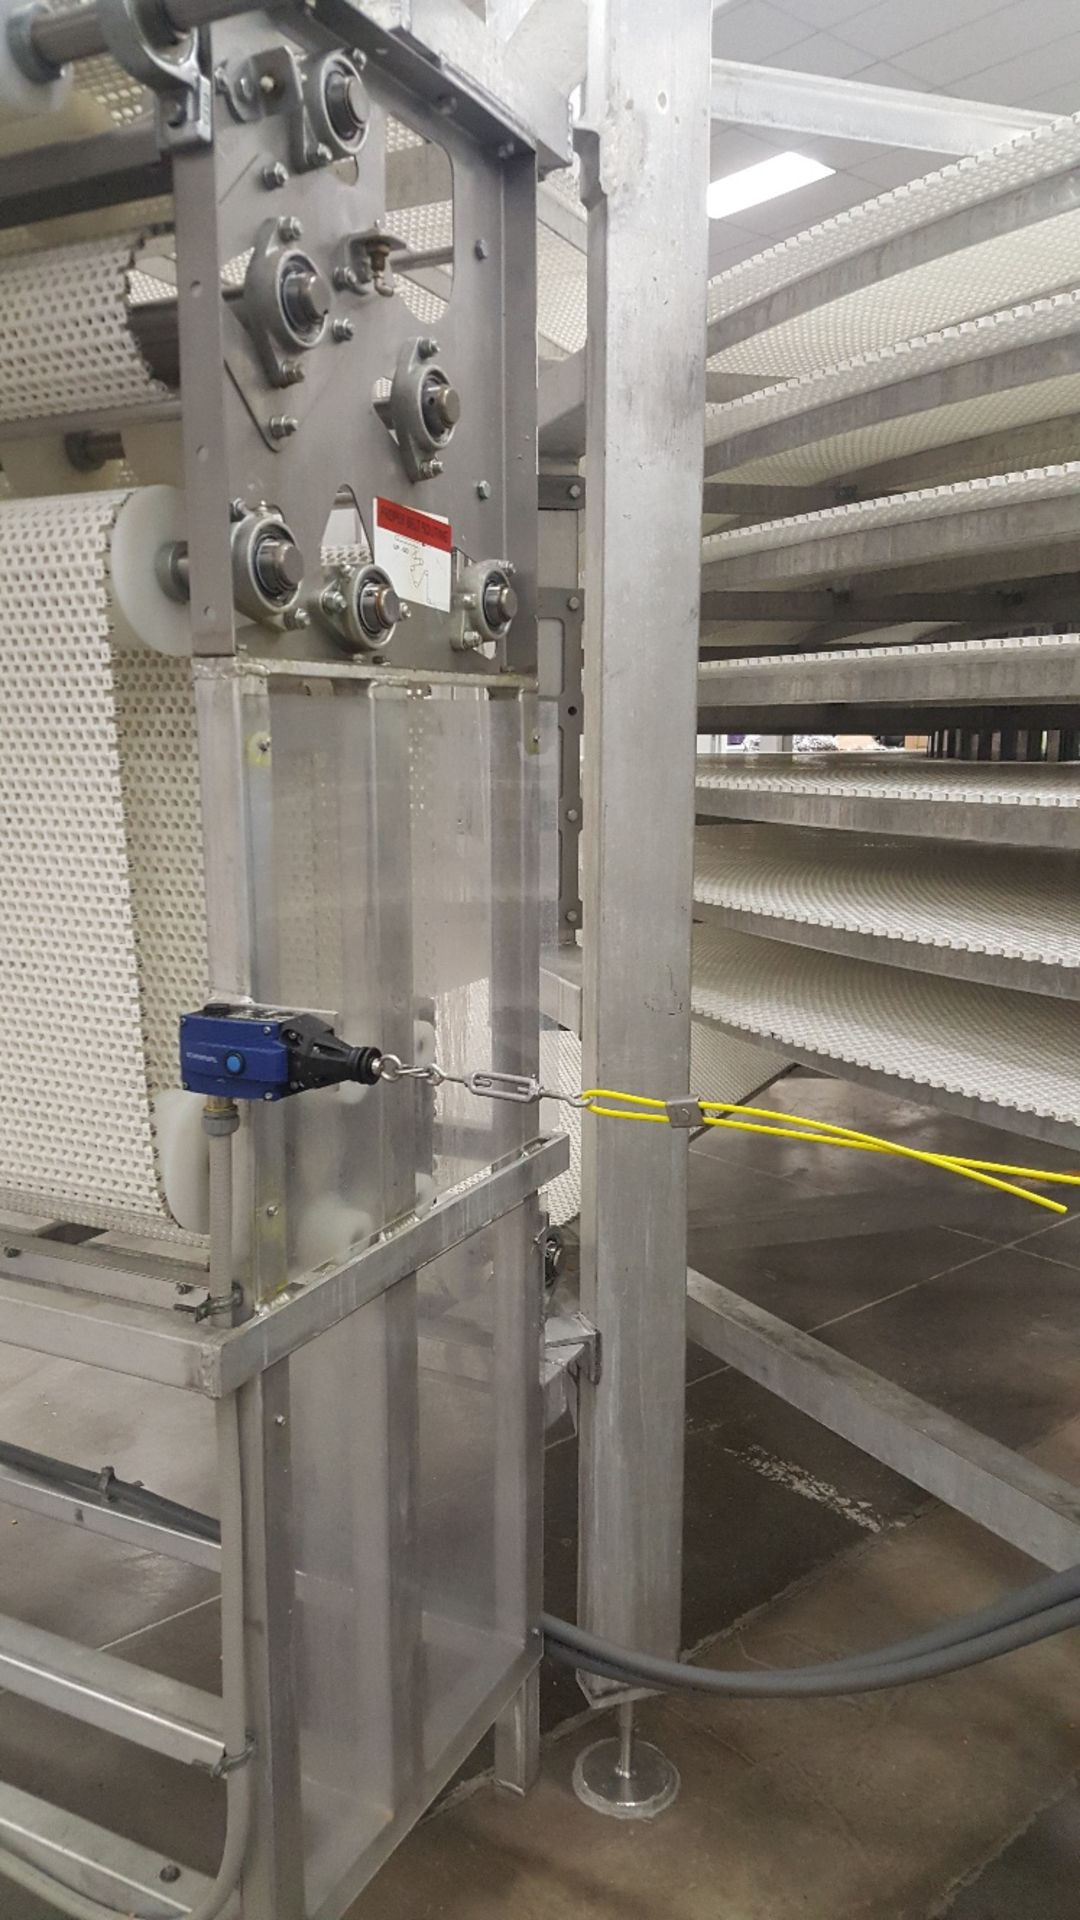 Lot 1 - 2014 IJ White Ambient Spiral Cooling Conveyor, 9-Tier, 26ft-8in Belt Outside Diameter, 48in Wide Int